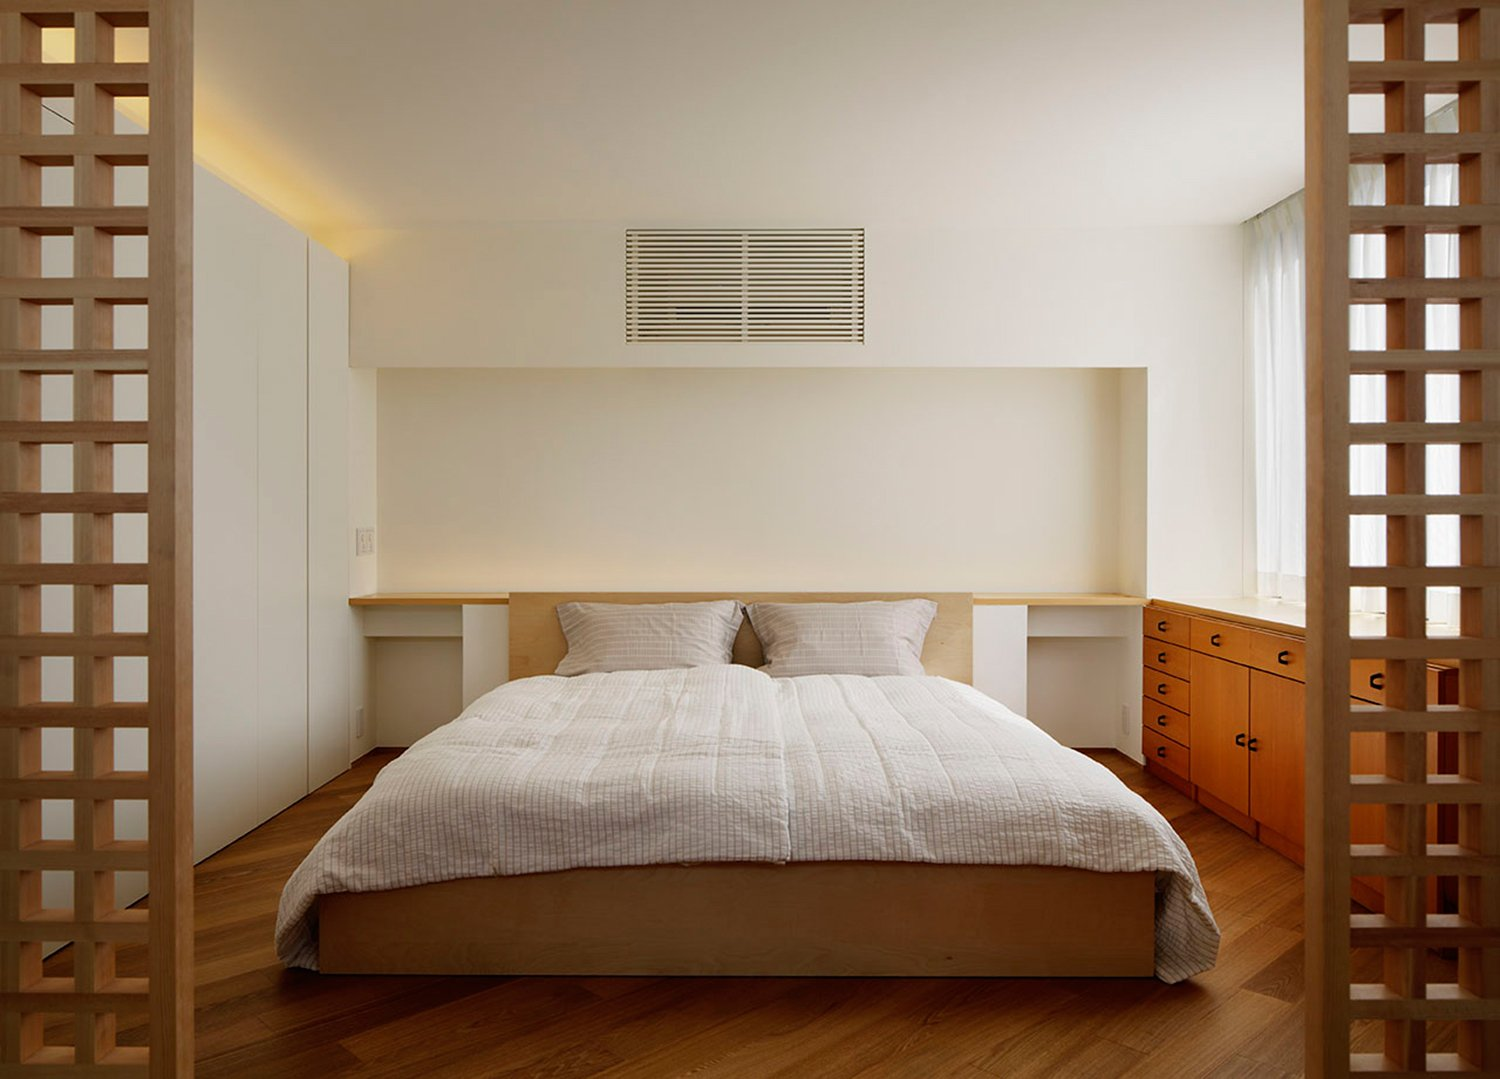 Ash wood furniture that shines on a white wall. Give the room warmth. }